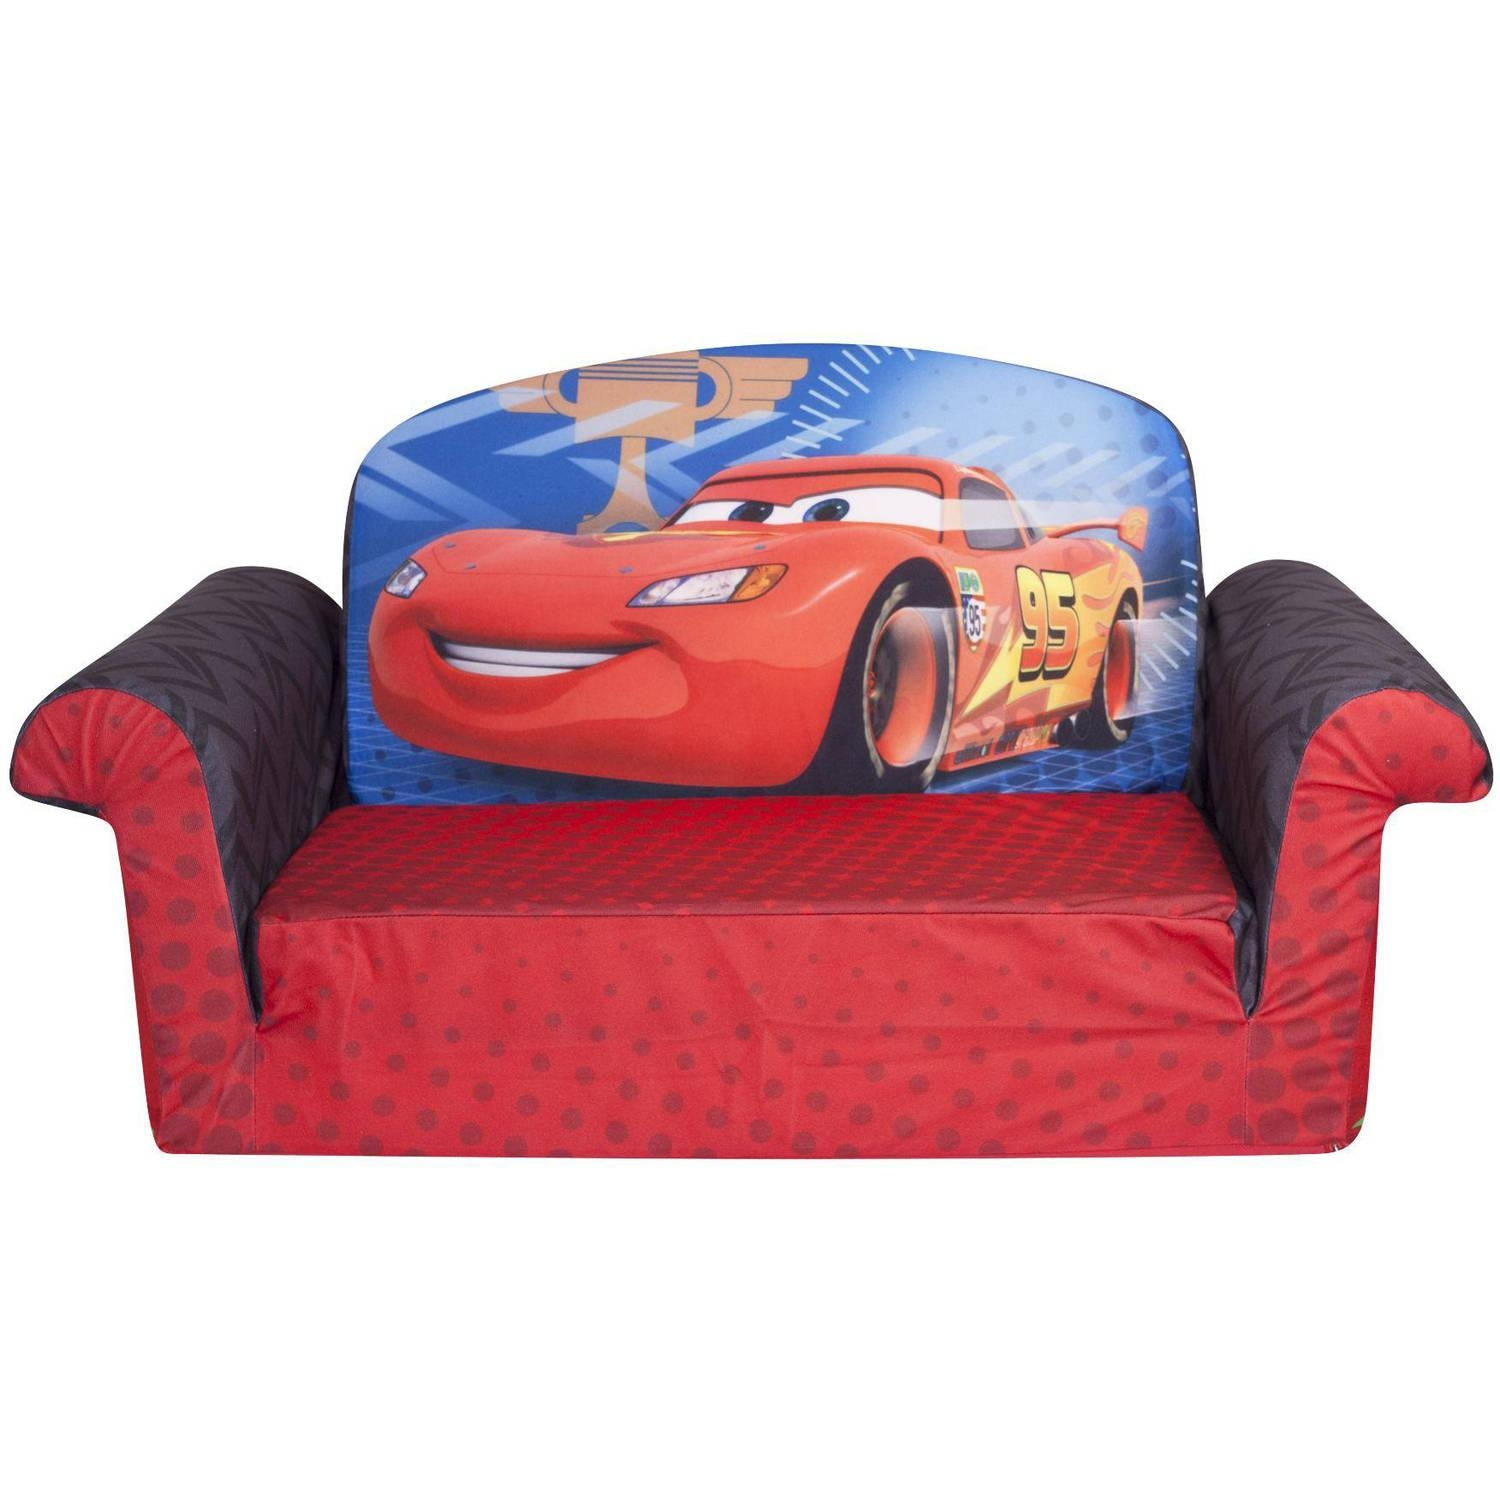 Marshmallow 2 In 1 Flip Open Sofa, Disney Cars 2 – Walmart Intended For Mickey Flip Sofas (Image 3 of 20)